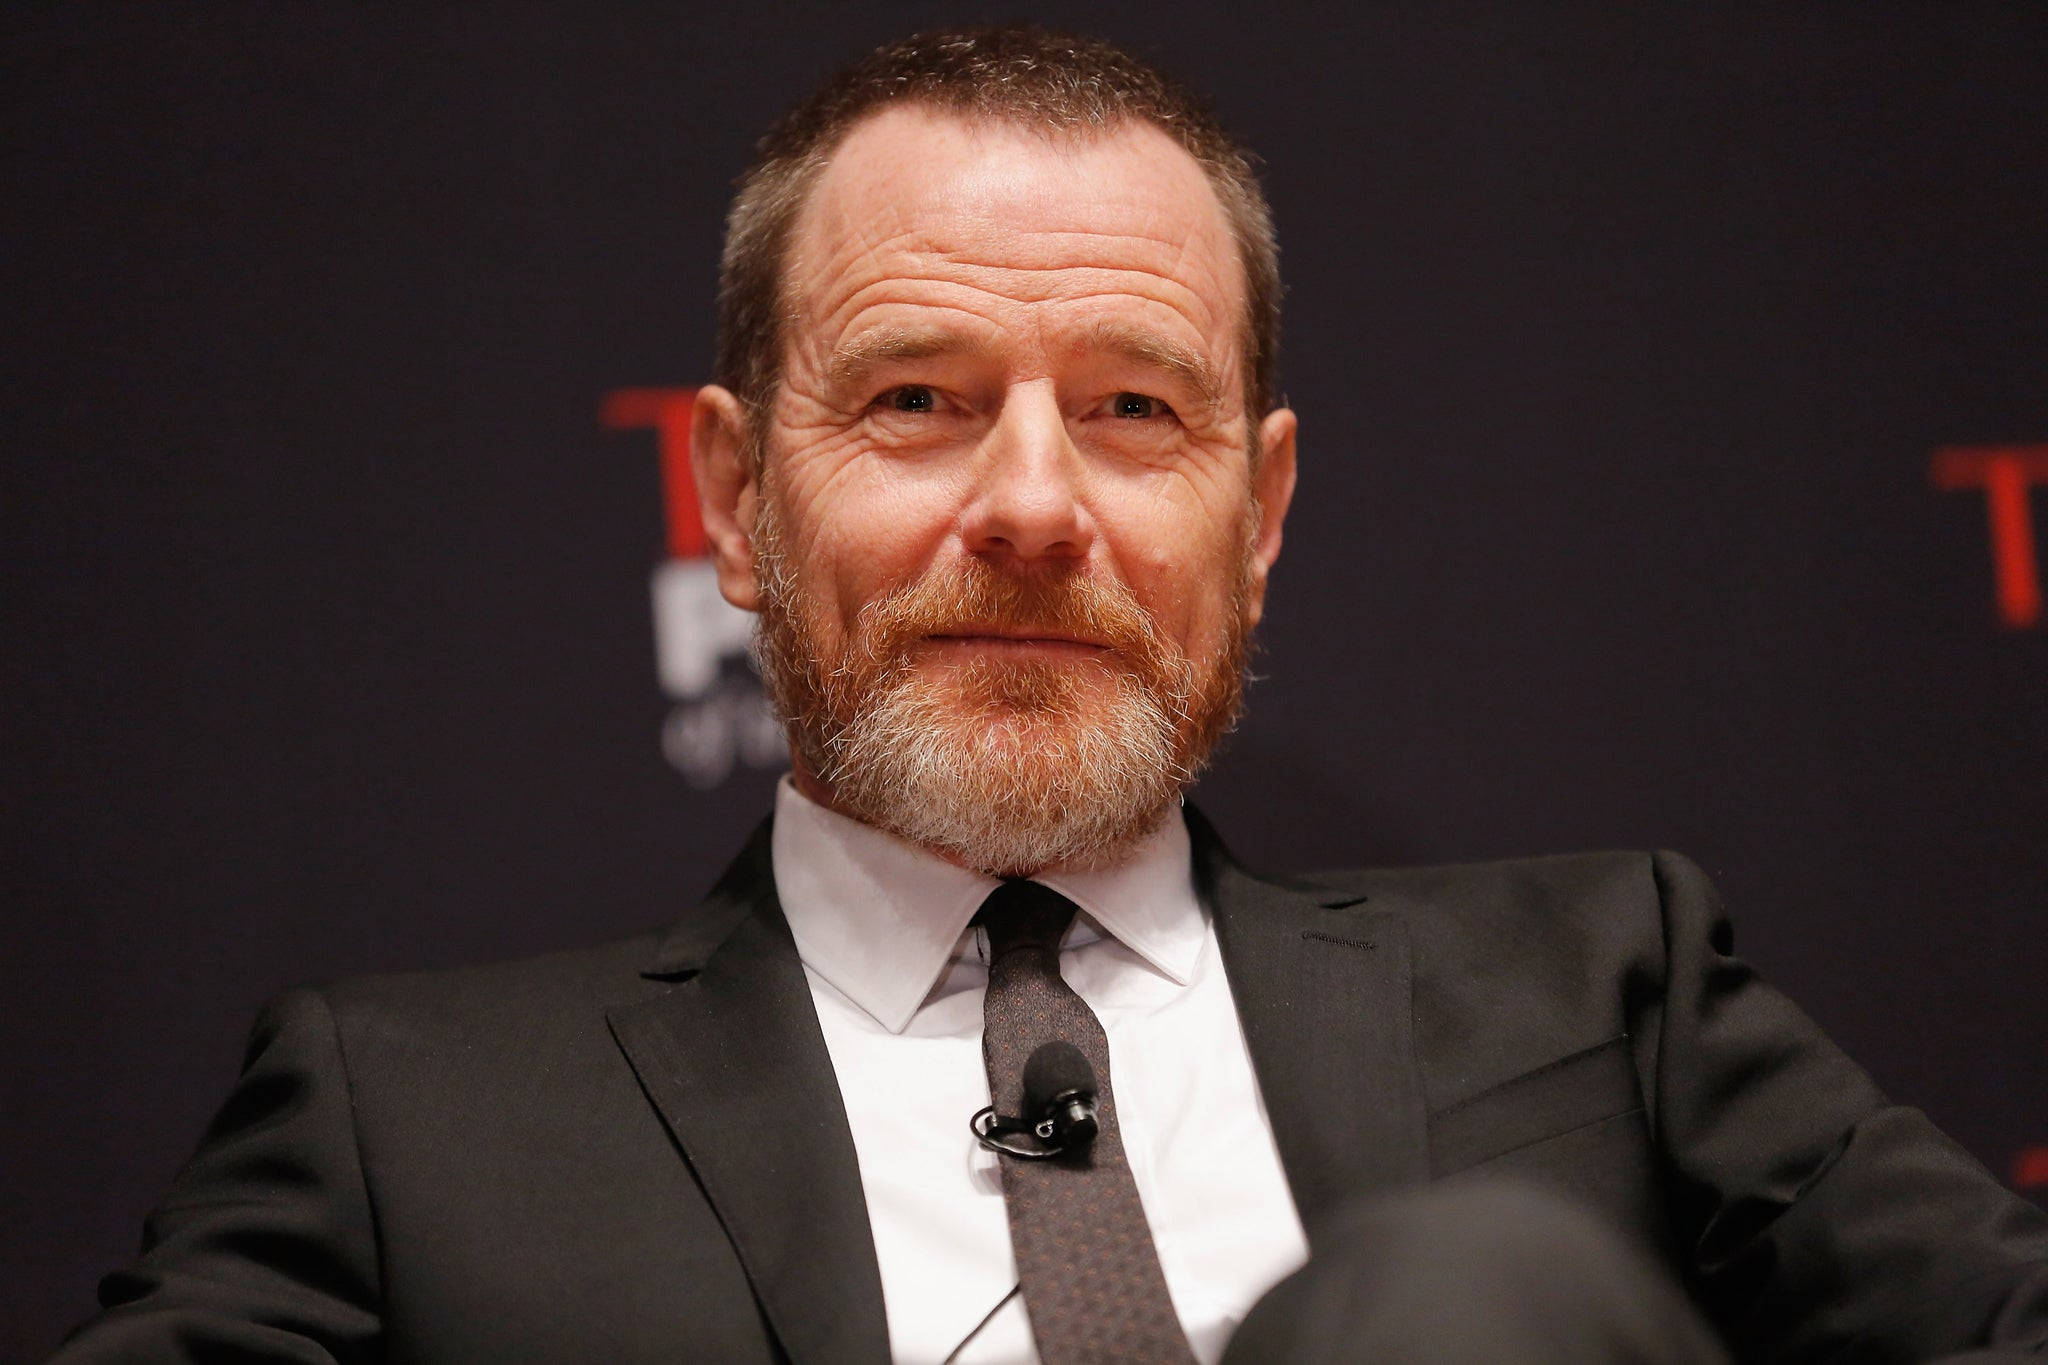 bryan cranston trumpbryan cranston instagram, bryan cranston power rangers, bryan cranston book, bryan cranston height, bryan cranston gif, bryan cranston wife, bryan cranston trump, bryan cranston daughter, bryan cranston parents, bryan cranston movies, bryan cranston net worth, bryan cranston tattoo, bryan cranston кинопоиск, bryan cranston x-files, bryan cranston life in parts, bryan cranston james franco, bryan cranston sneaky pete, bryan cranston 2017, bryan cranston wiki, bryan cranston imdb